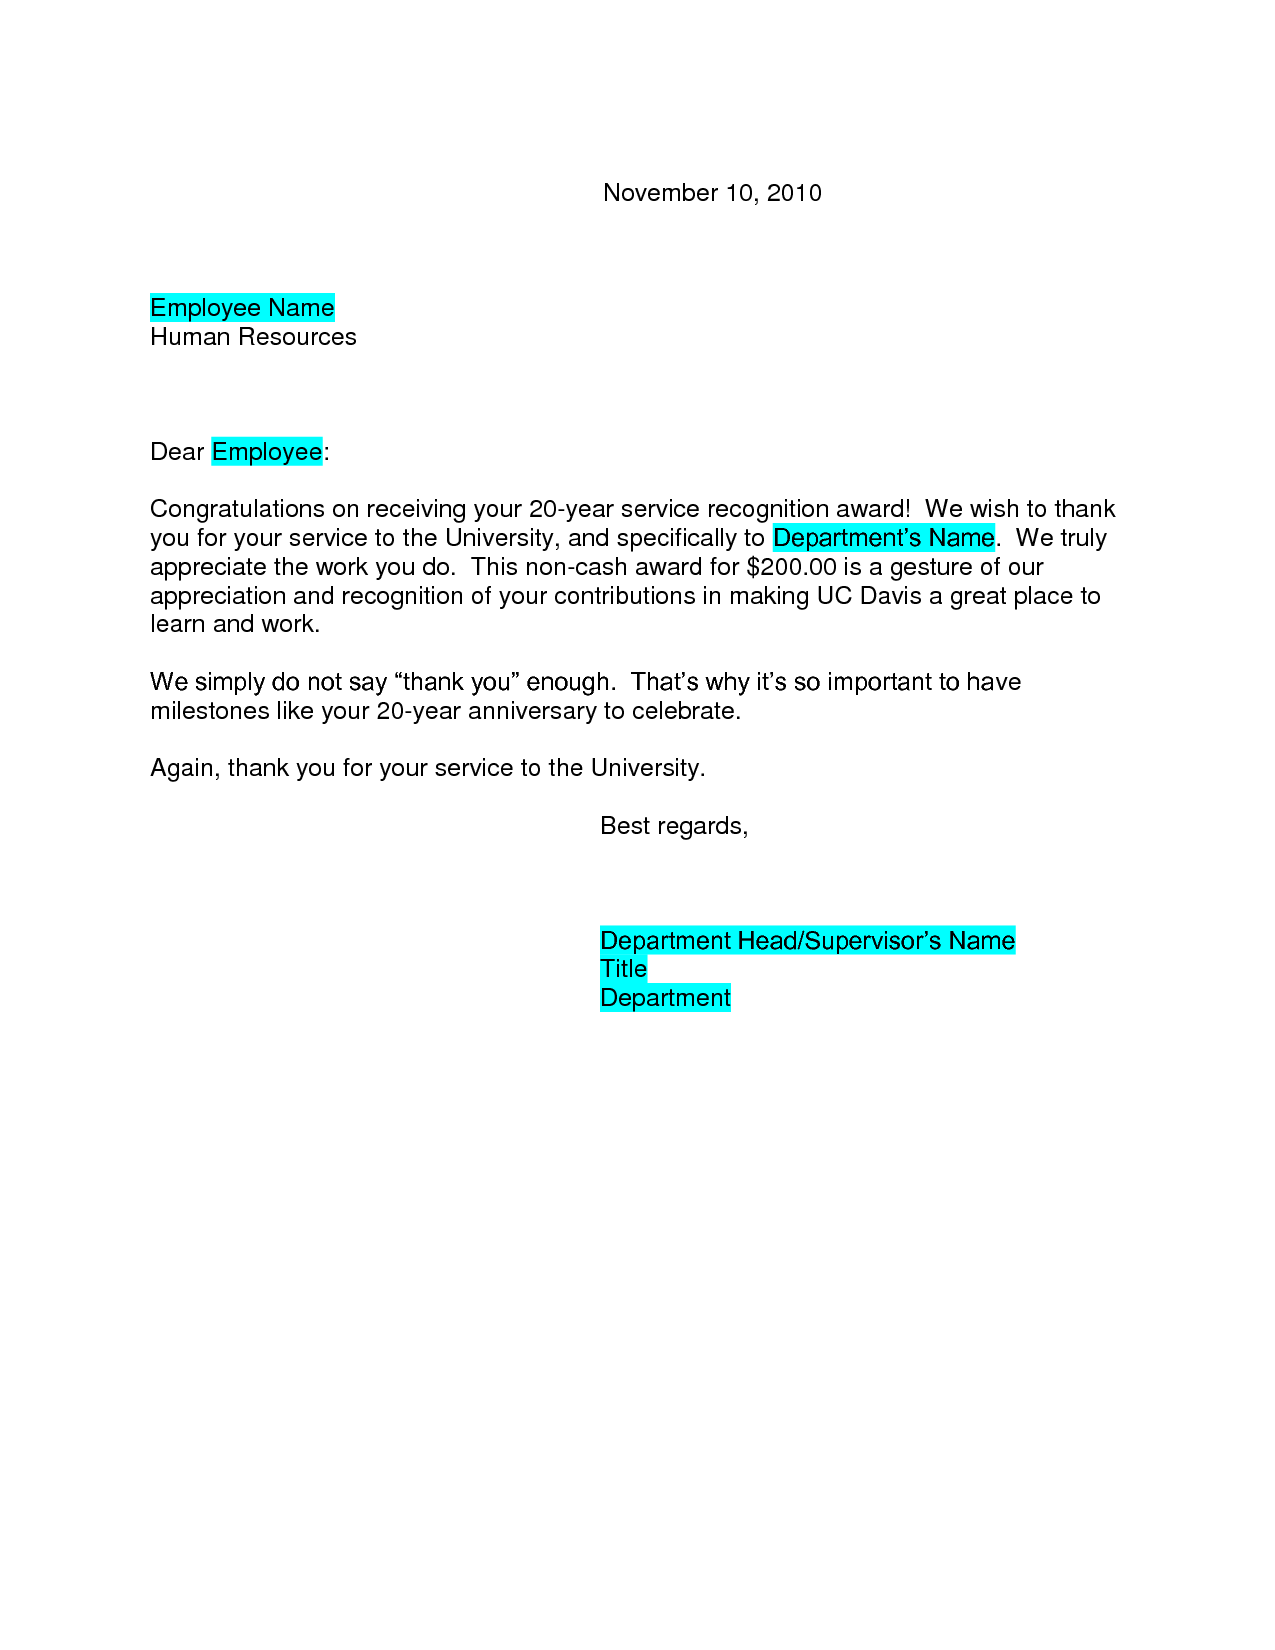 17 best images about congratulations letters 17 best images about congratulations letters colleges formal business letter and letter sample